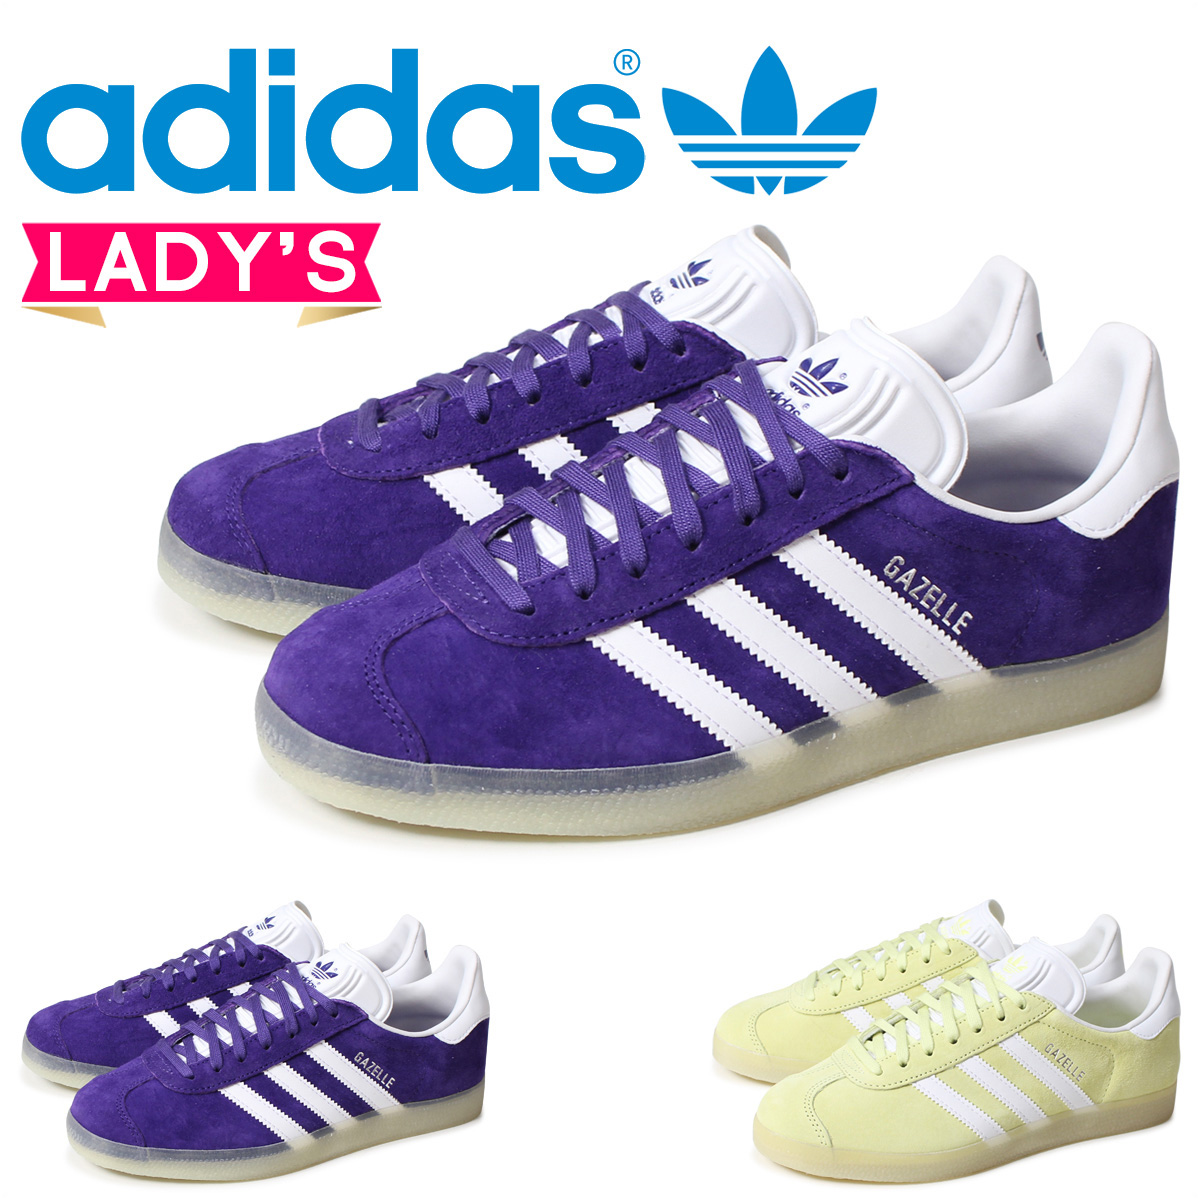 Adidas Gazelle Womens sneakers adidas originals GAZELLE BB5501 BB5499 shoes yellow purple original [reservation product 12/16 time in stock new stock plan]